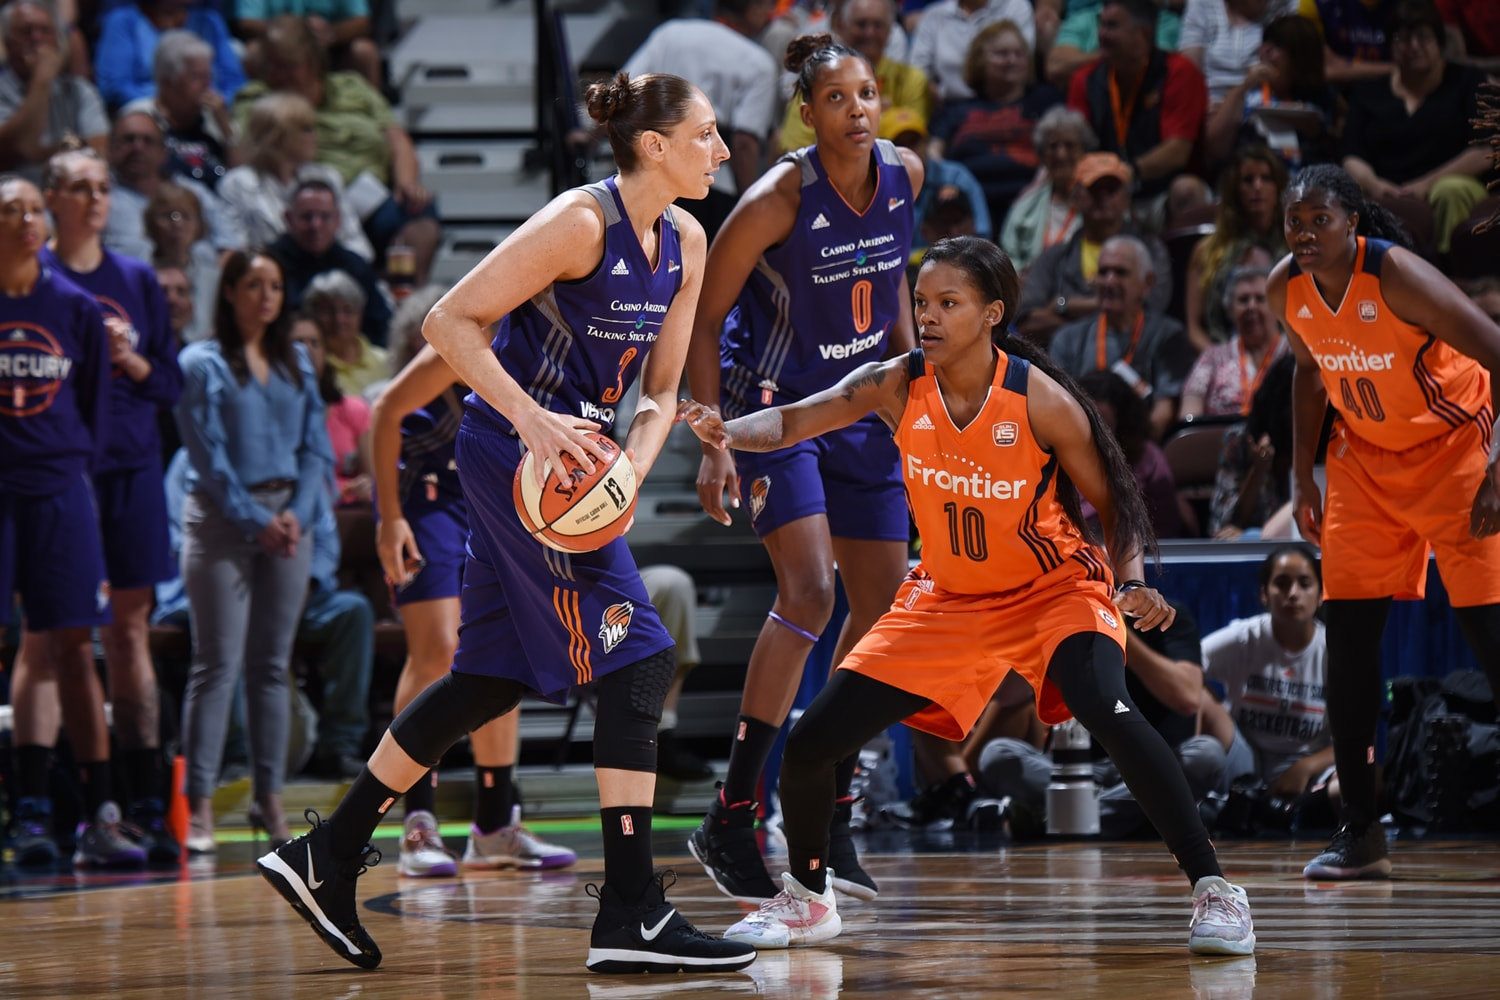 Diana Taurasi makes a play during Phoenix Mercury v Connecticut Sun